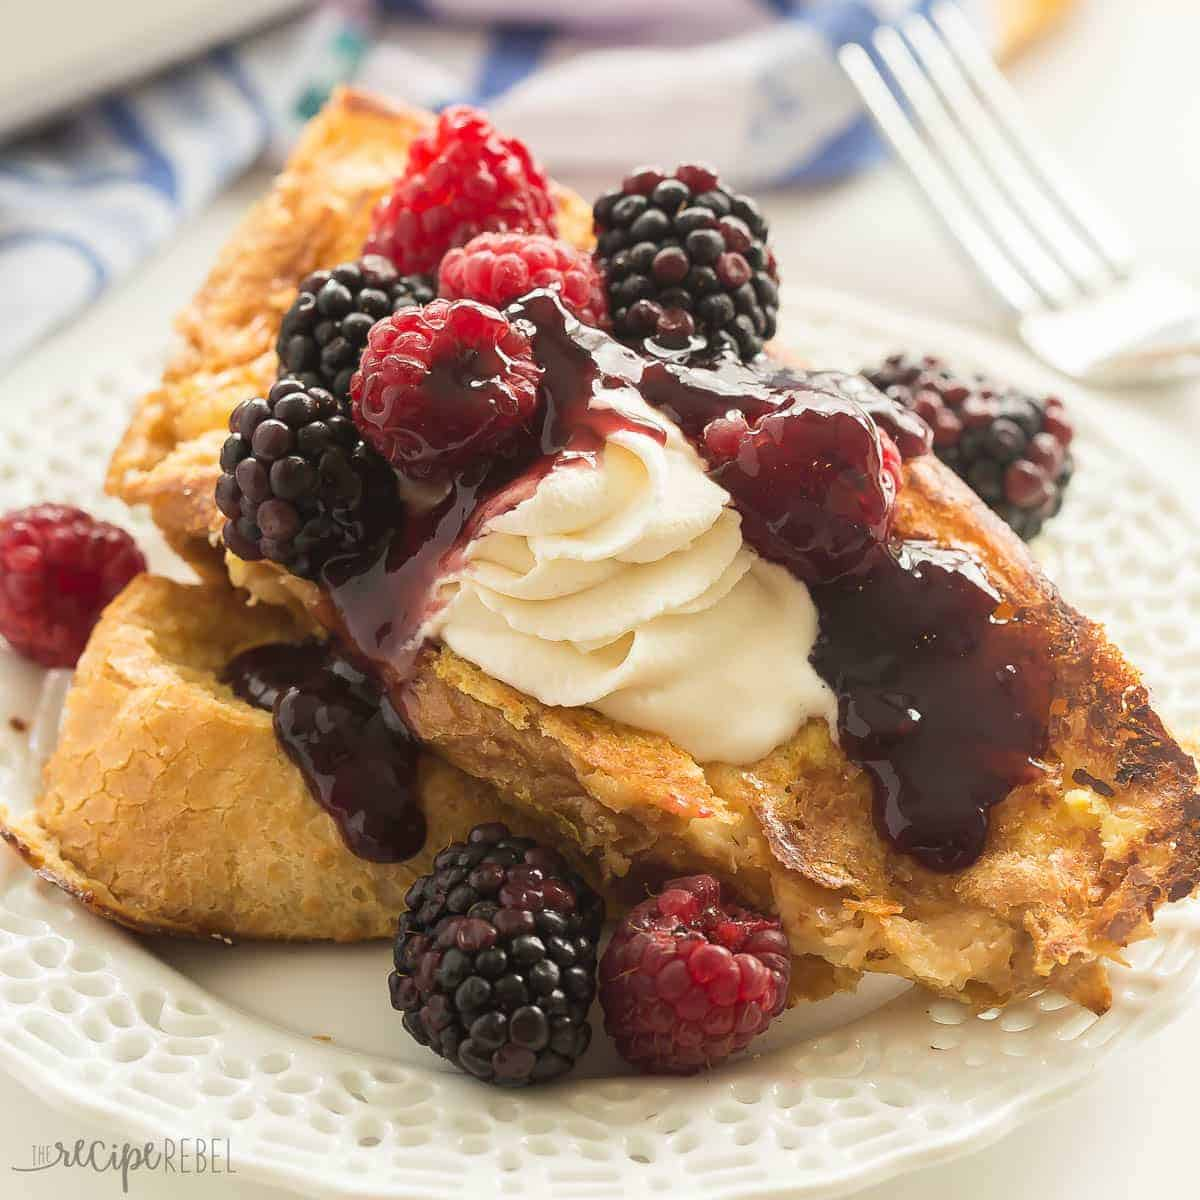 This Baked Lemon French Toast is so much easier than flipping French toast on the stove! It's perfect for holiday gatherings, brunch potlucks, and Christmas gatherings! Top with fresh berries and whipped cream or yogurt for a special morning treat.